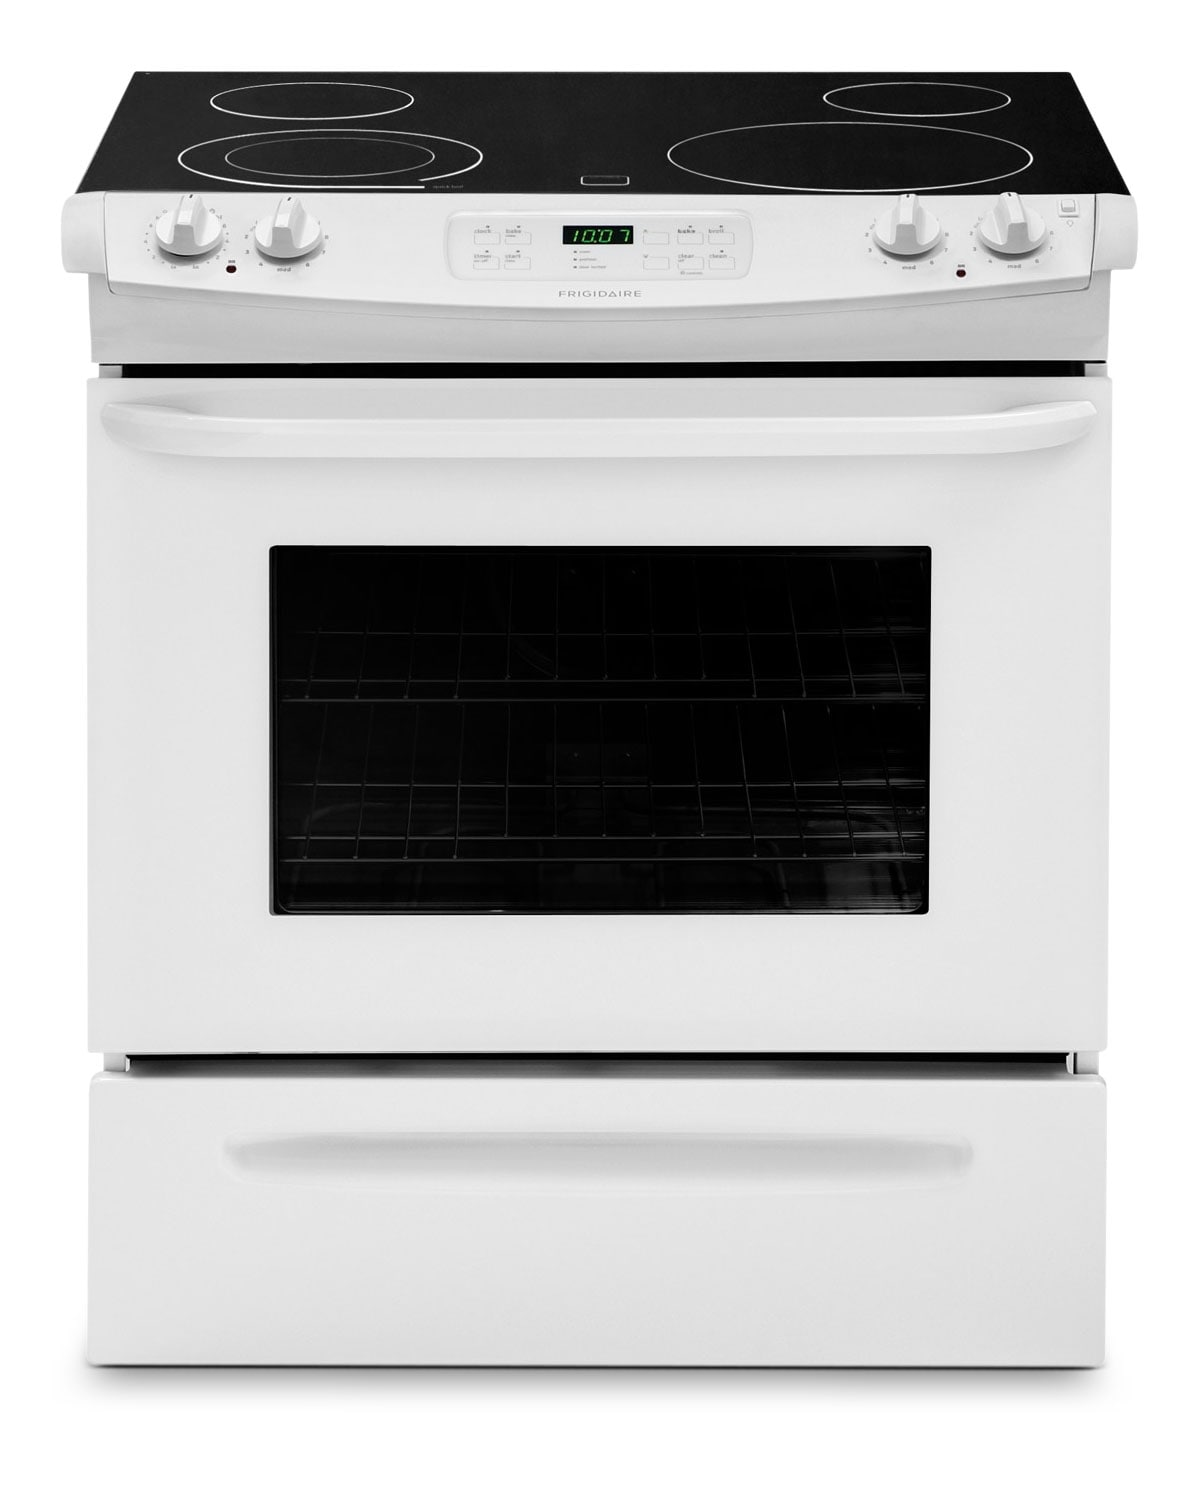 Frigidaire White Slide-In Electric Range (4.6 Cu. Ft.) - CFES3025PW